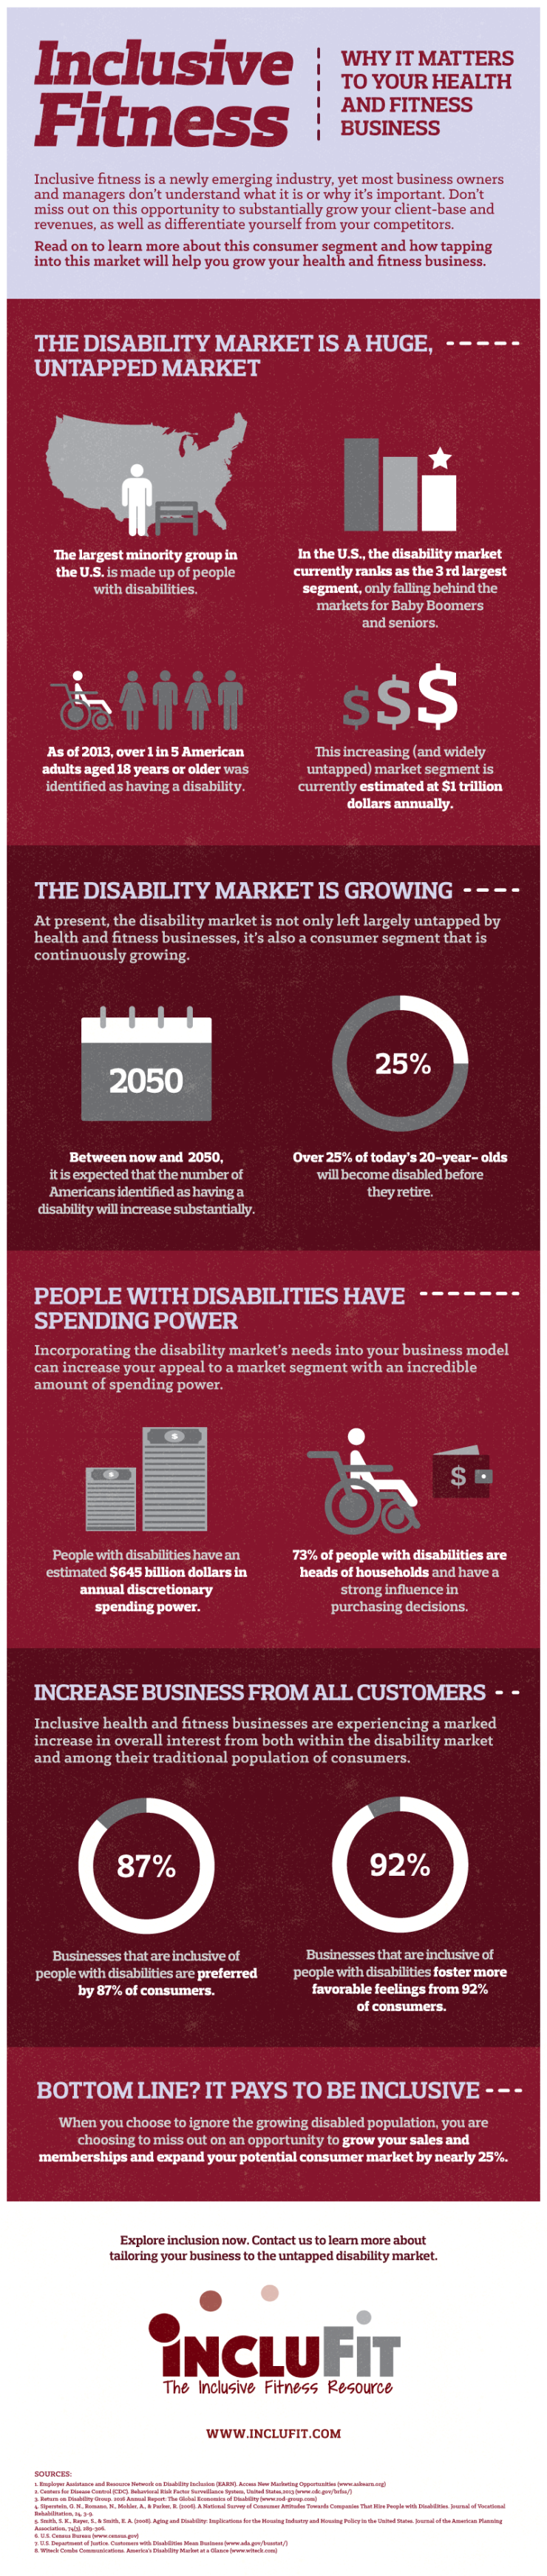 Inclusive Fitness - Why it Matters [Infographic]